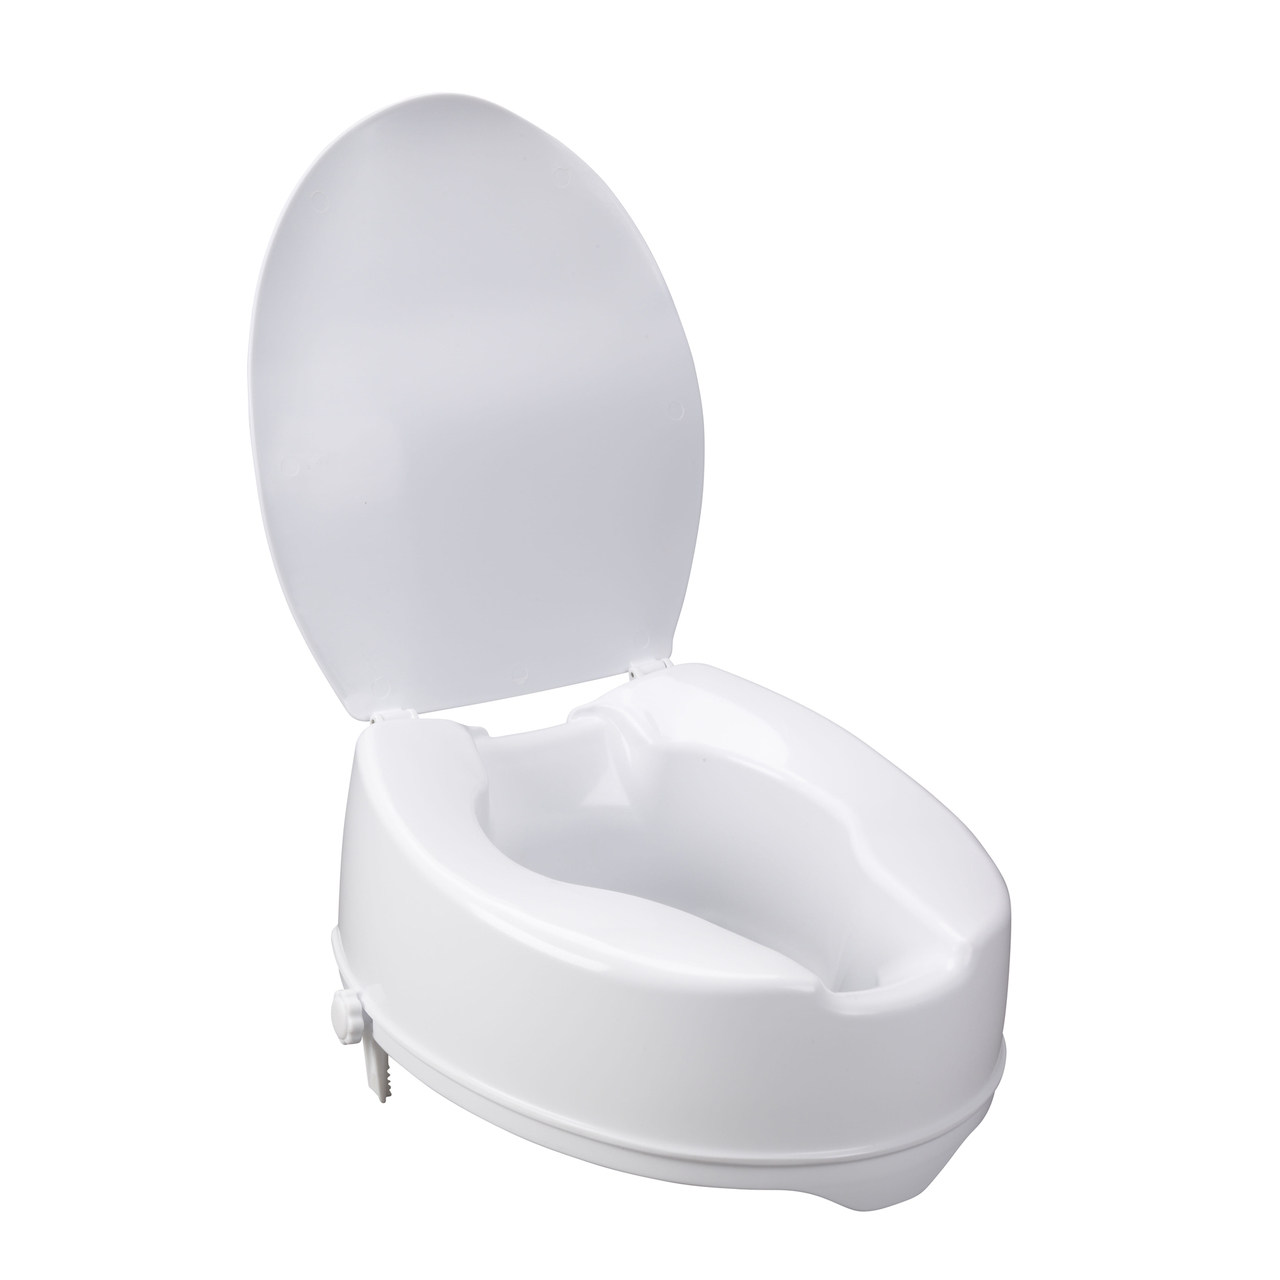 Surprising 12067 Drive Medical Raised Toilet Seat With Lock And Lid 6 Pdpeps Interior Chair Design Pdpepsorg